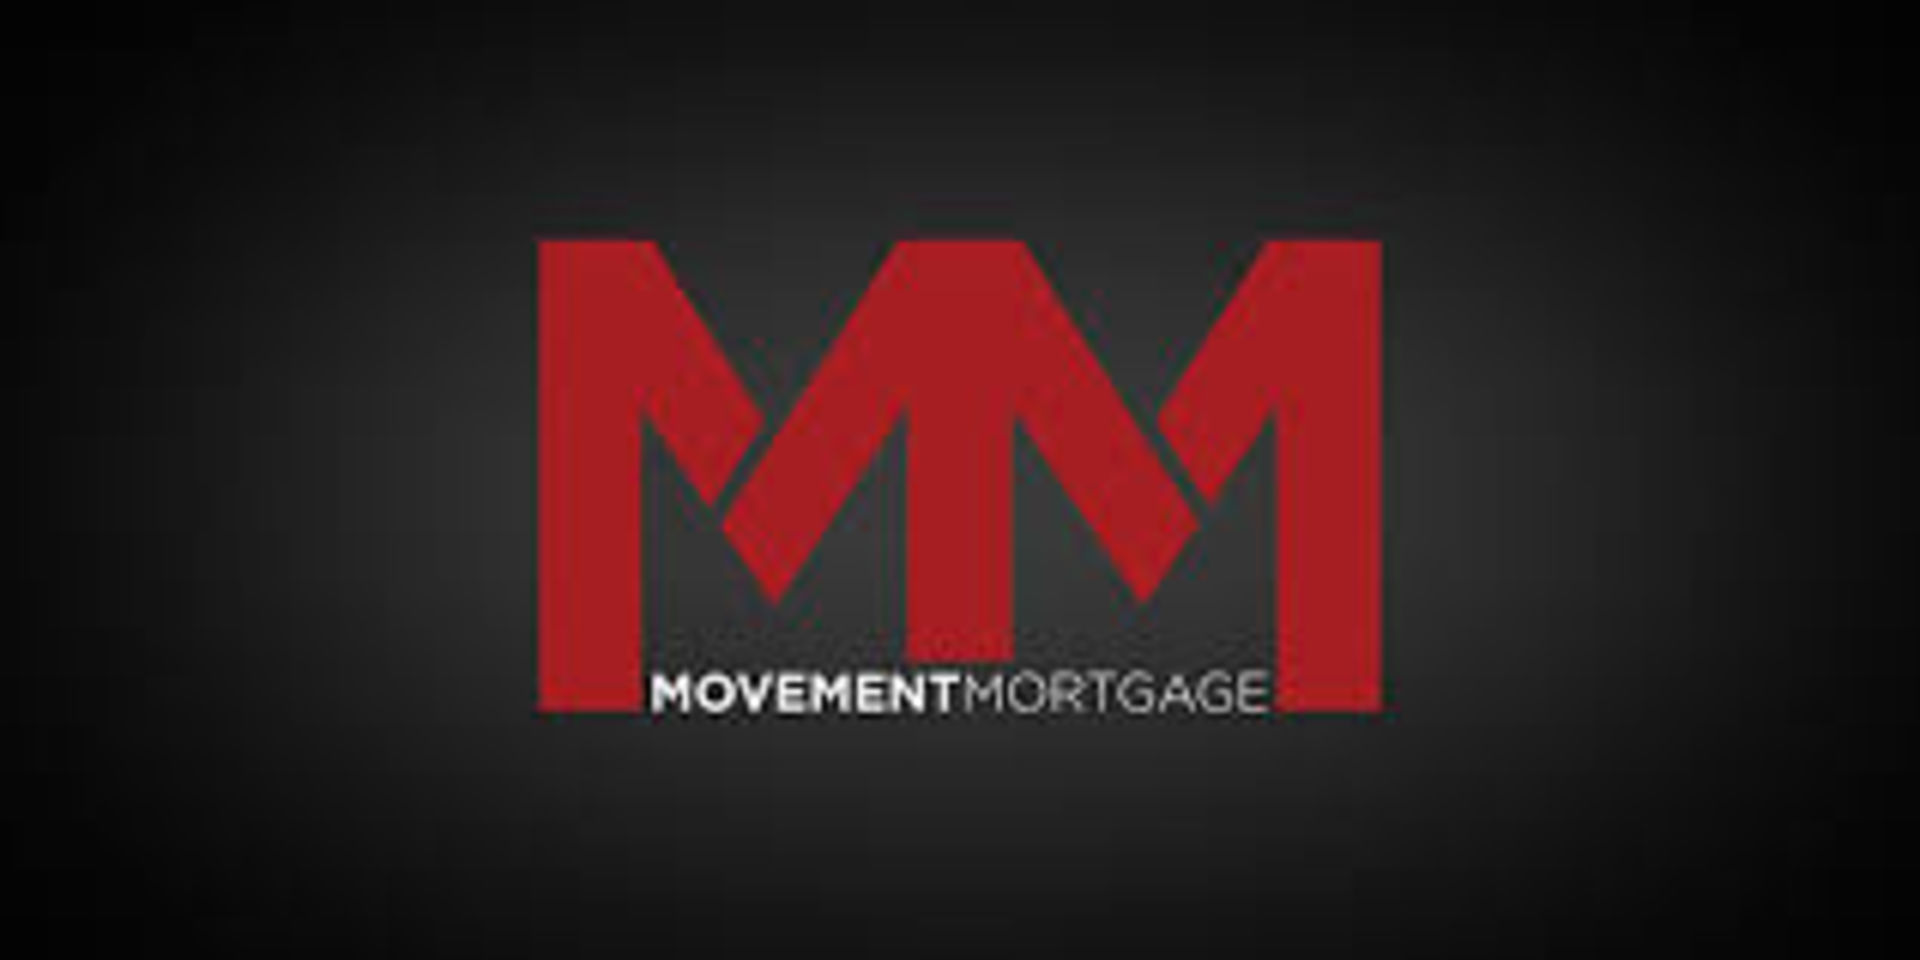 Monday Market update from Movement Mortgage